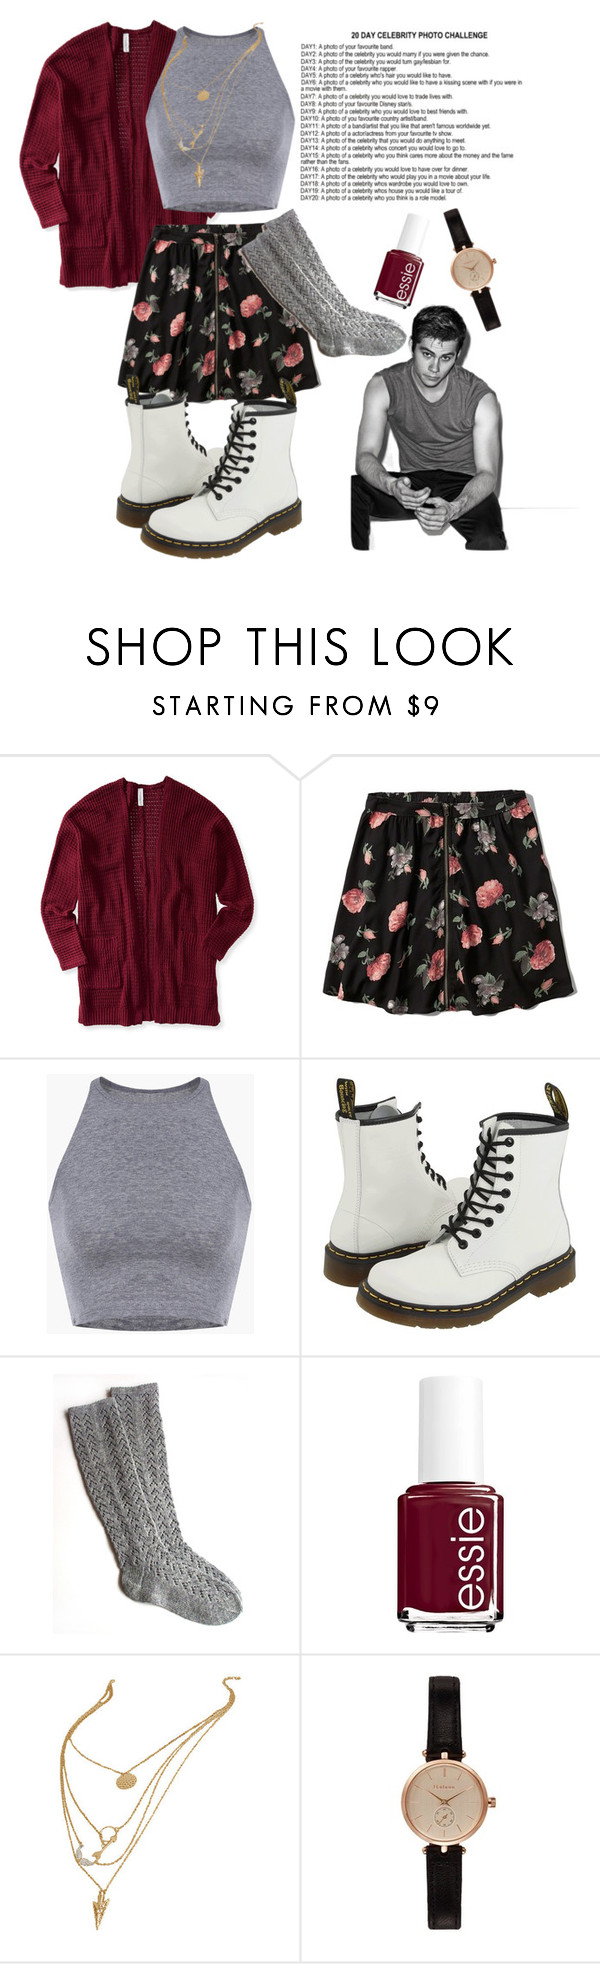 """Day 6"" by emmapierce42 ❤ liked on Polyvore featuring Aéropostale, Abercrombie & Fitch, Dr. Martens, Essie and Barbour"